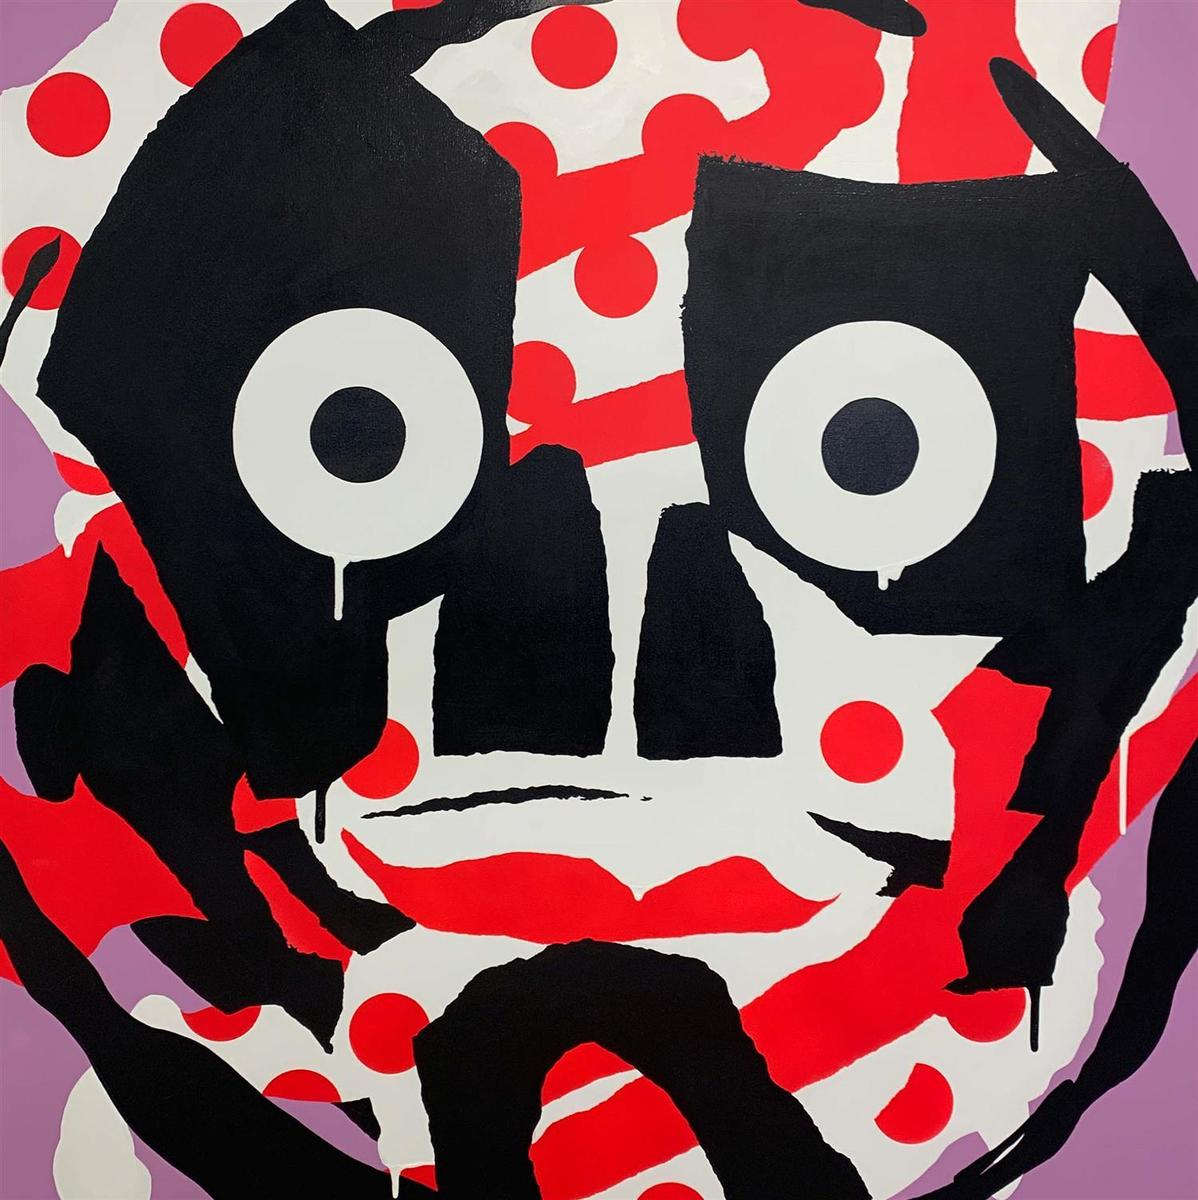 Red Spotted Mask, 2019